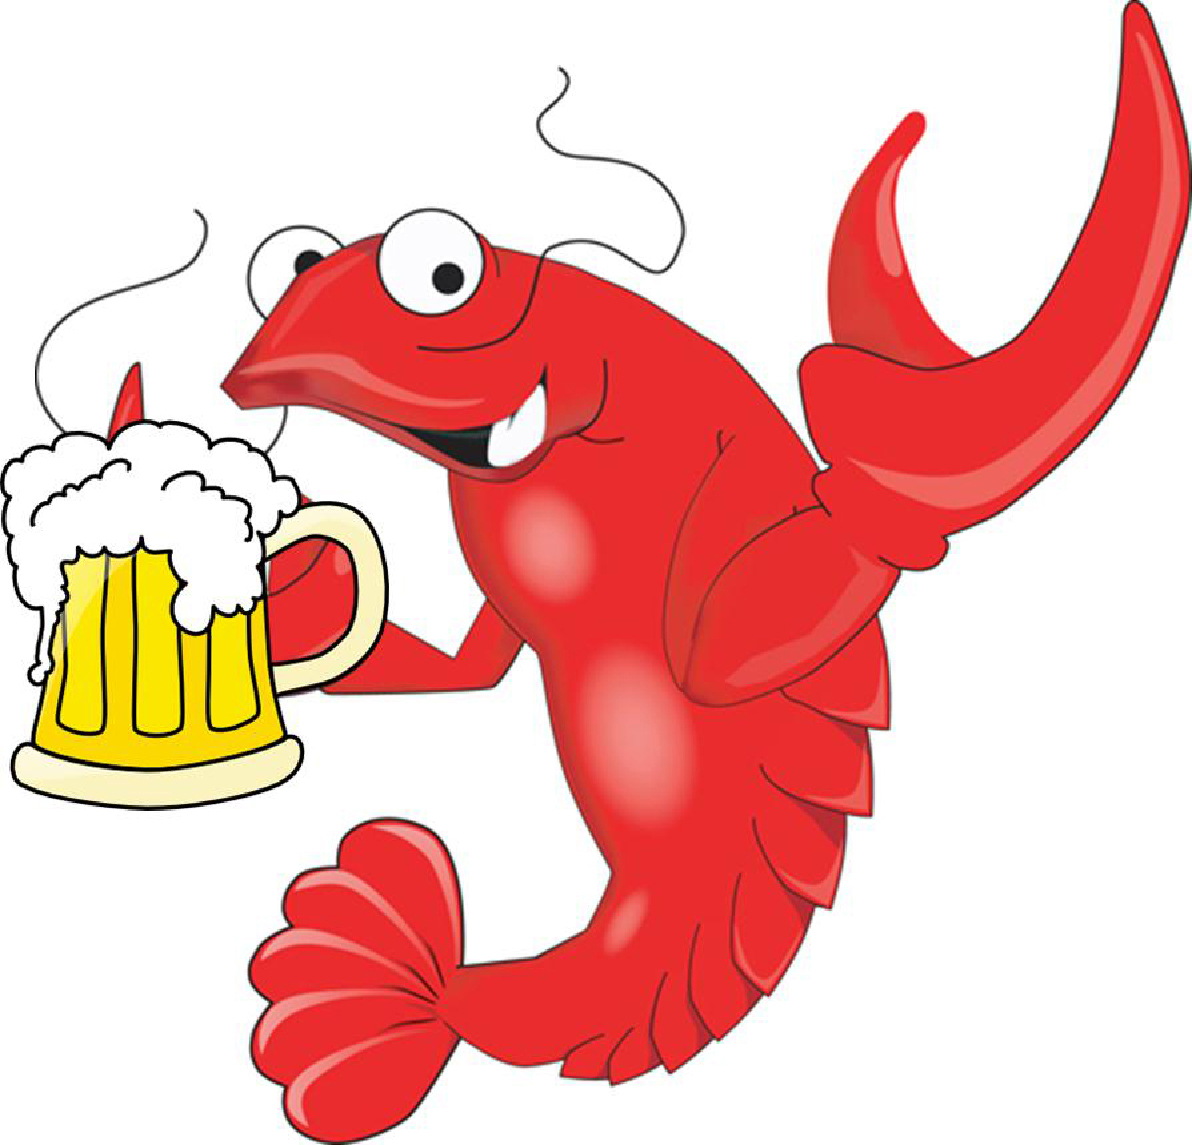 Funny Crawfish with a Mug of Beer 1750.73 Kb